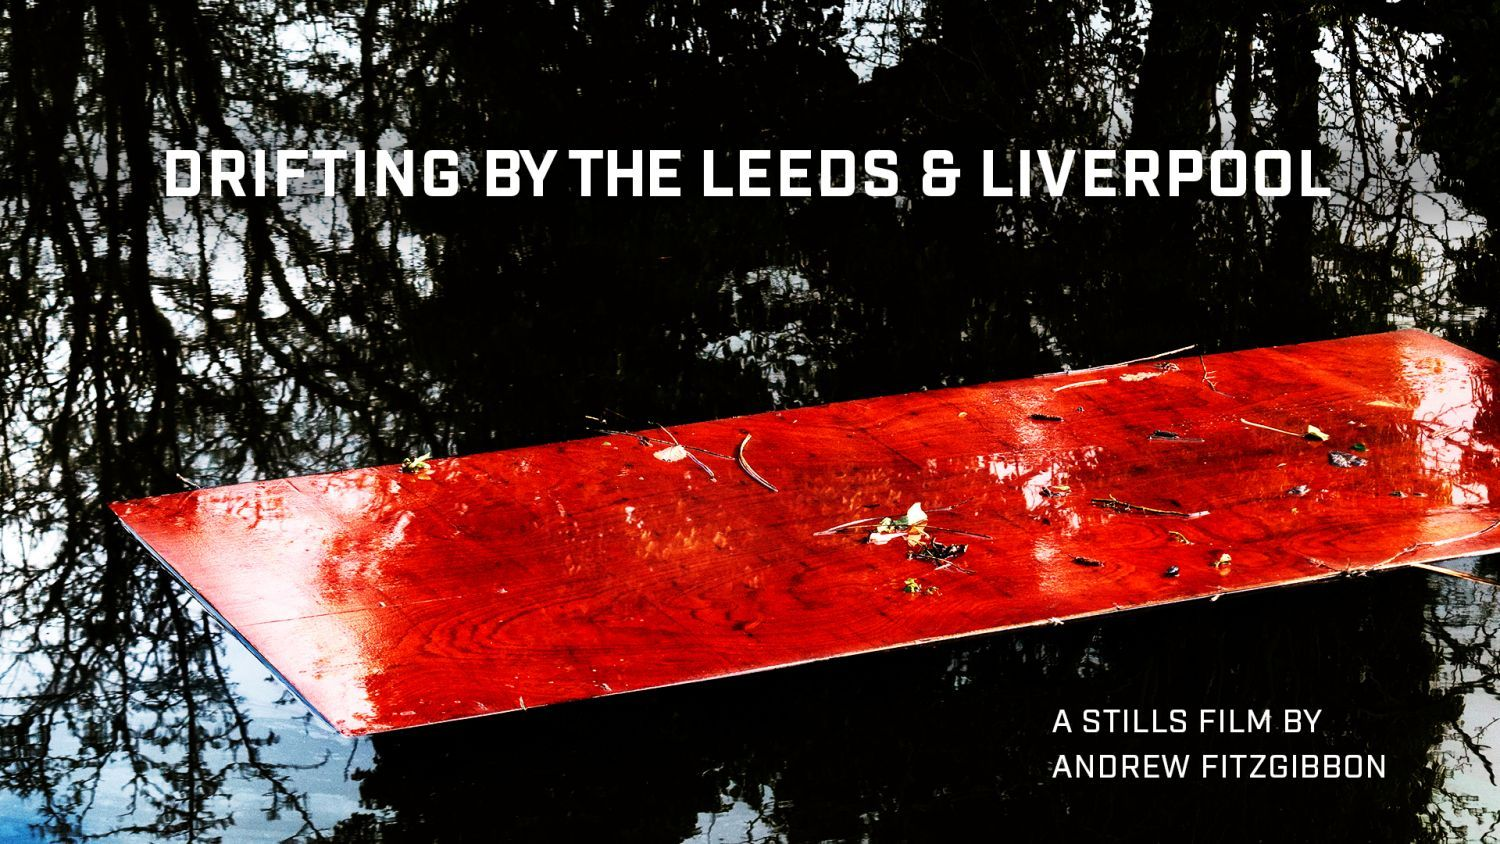 1_Leeds-and-Liverpool-film-cover